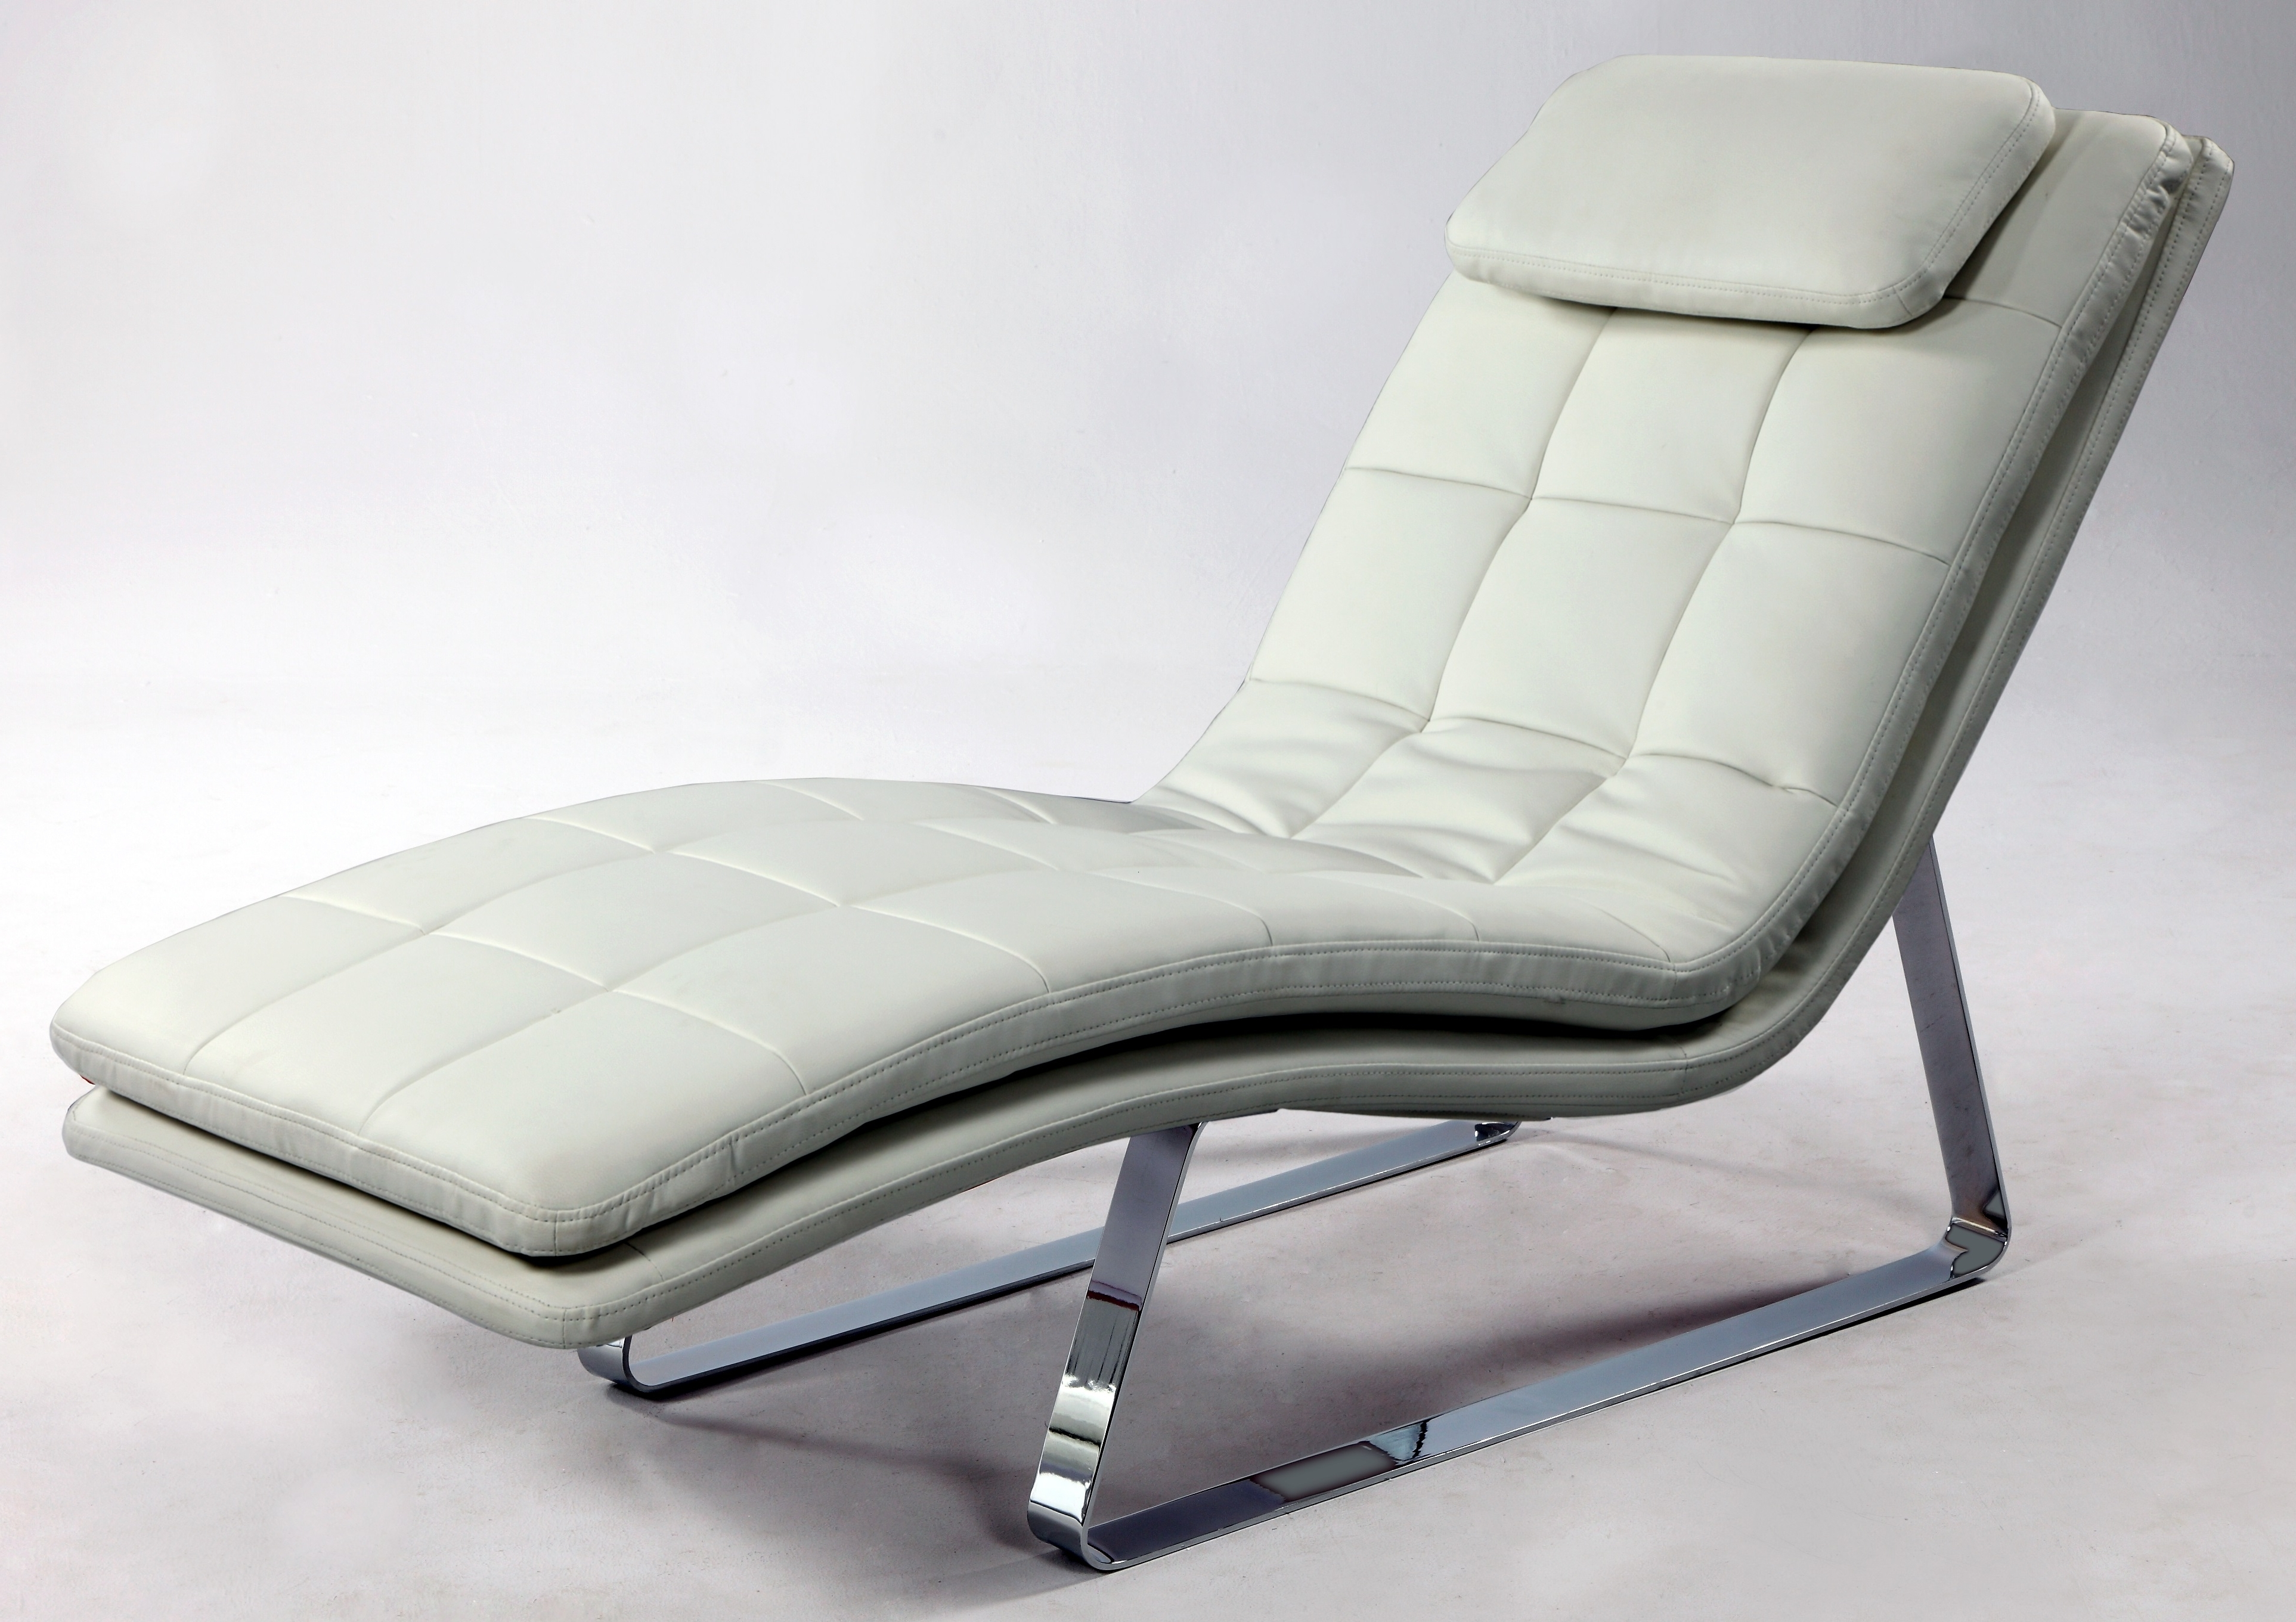 Best And Newest Full Bonded Leather Tufted Chaise Lounge With Chrome Legs New York With Regard To Contemporary Chaises (View 5 of 15)